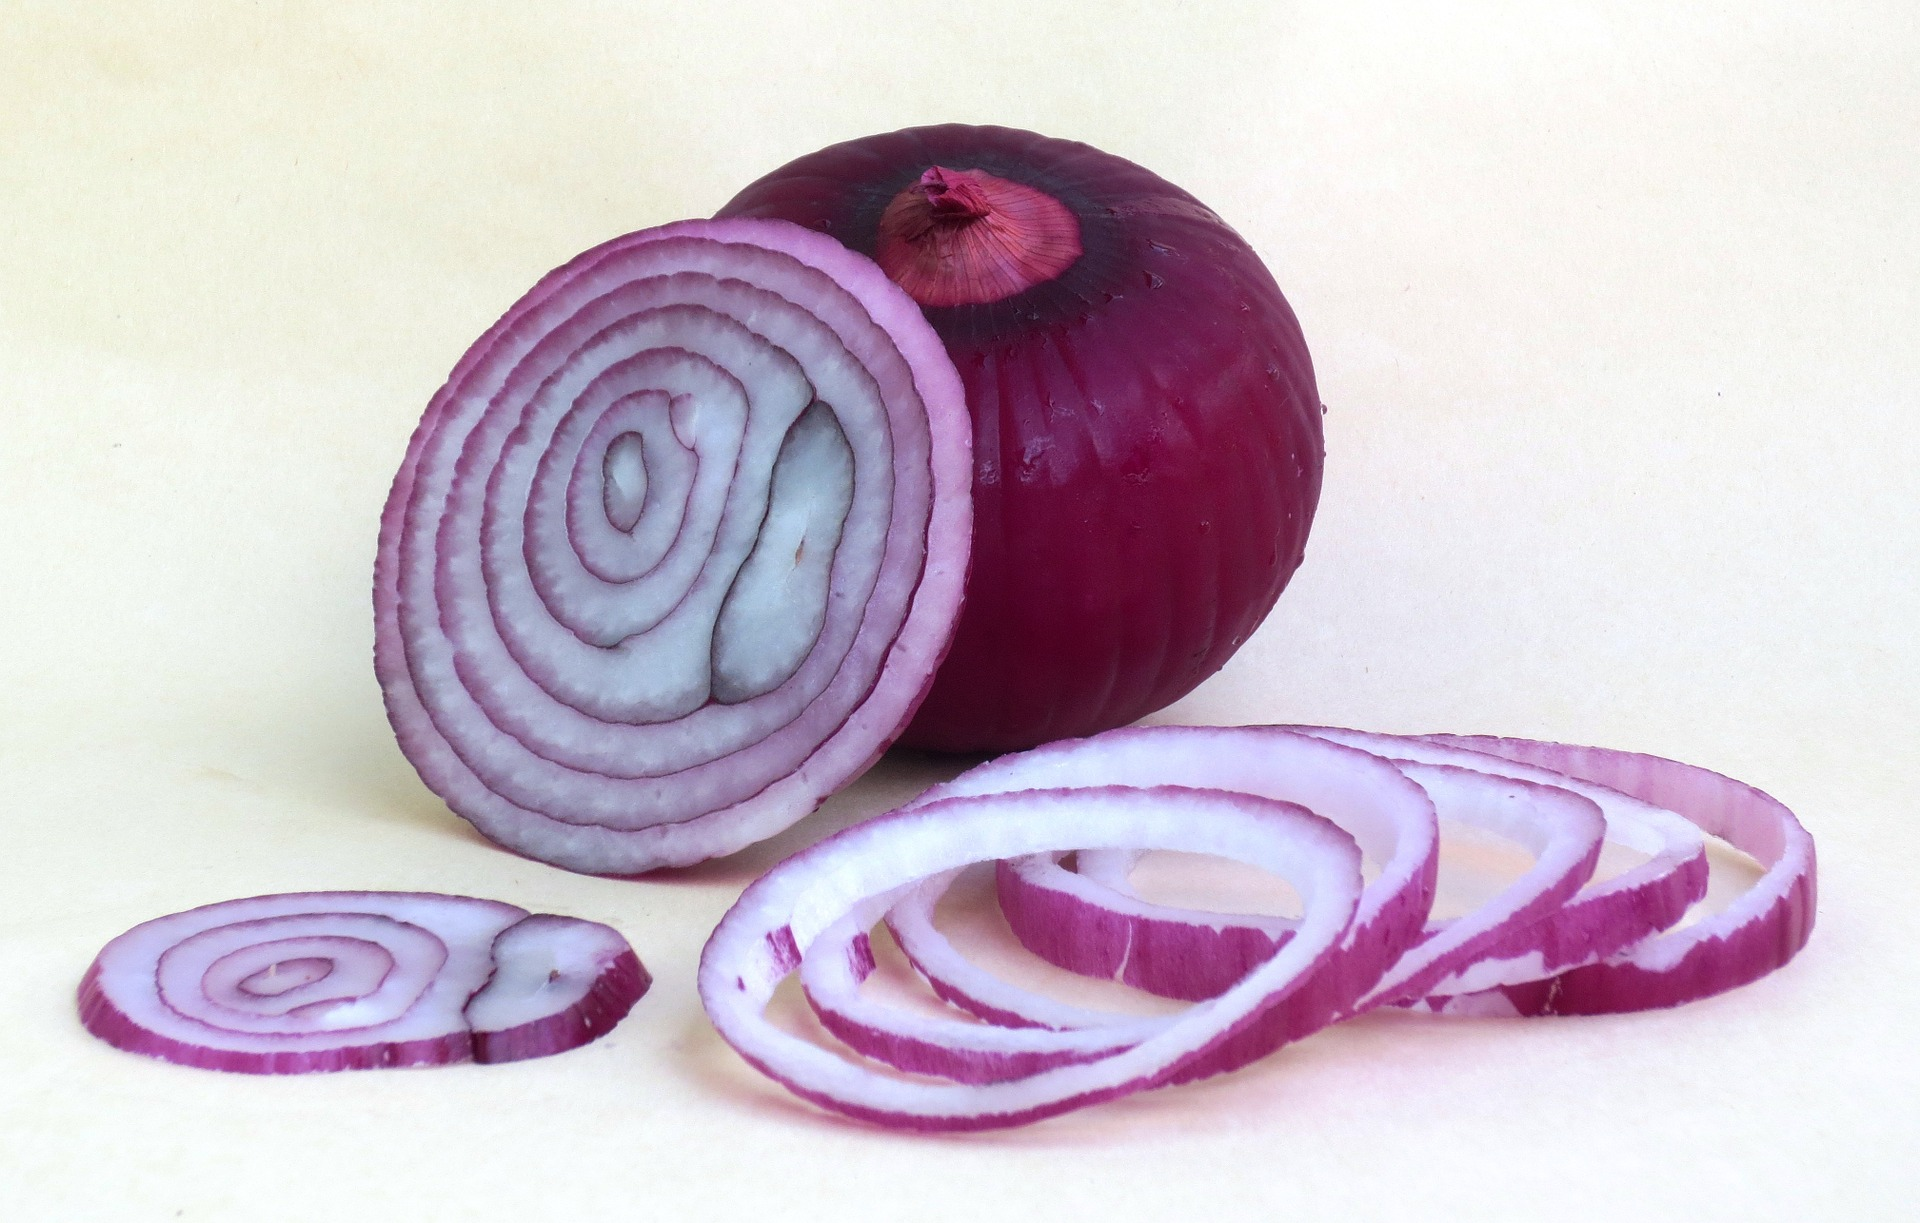 Red Onions Pack a Cancer-Fighting Punch, Study Reveals | U of G News